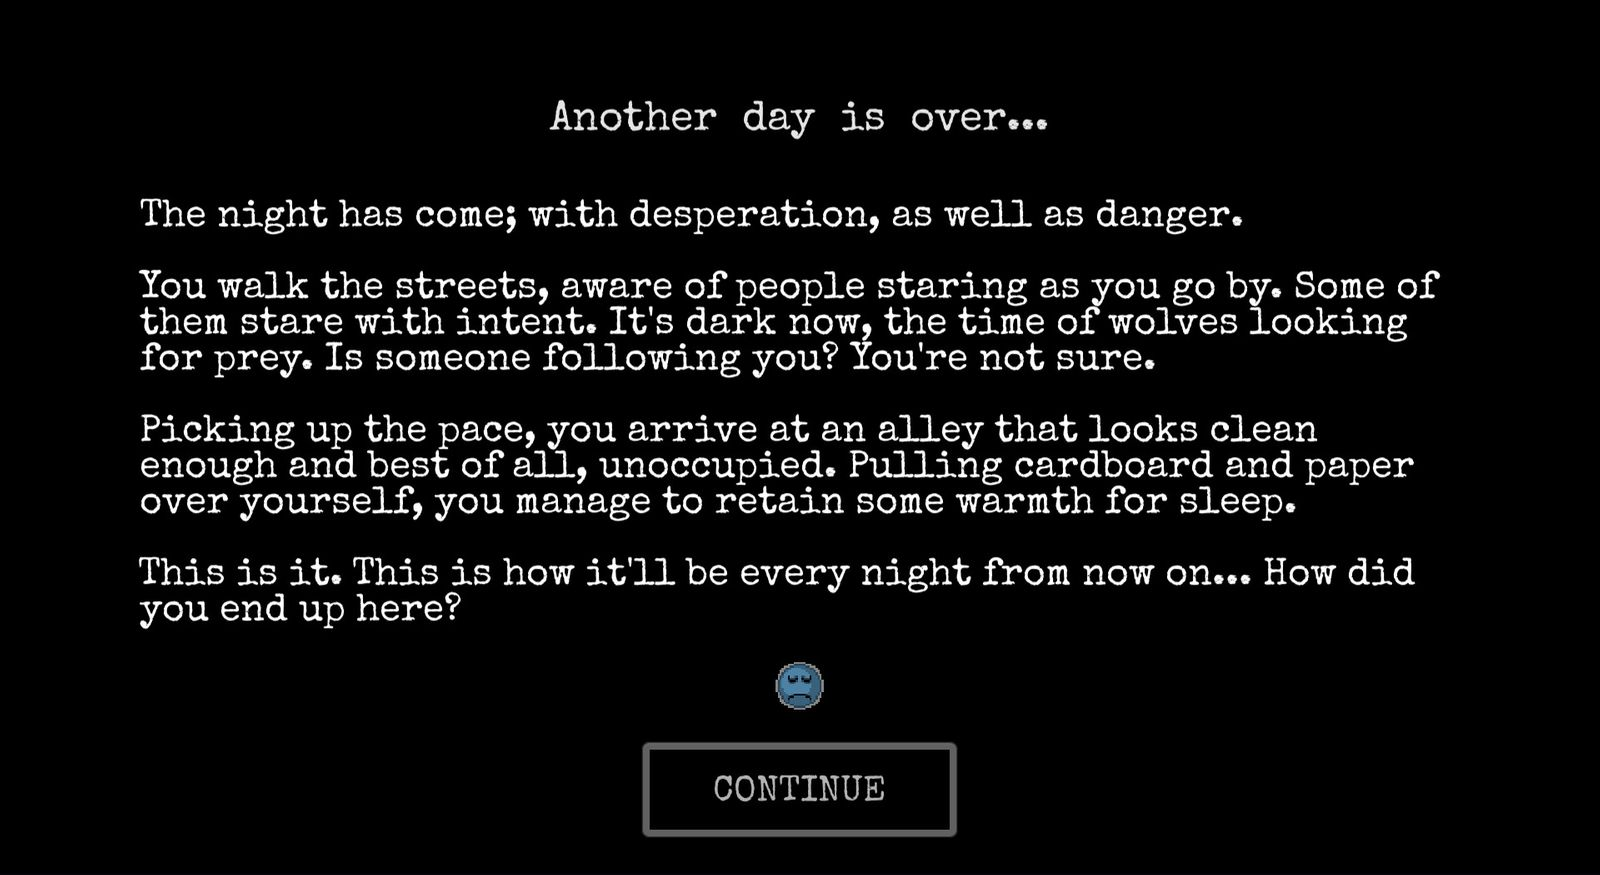 Videospiel / Change: A Homeless Survival Experience